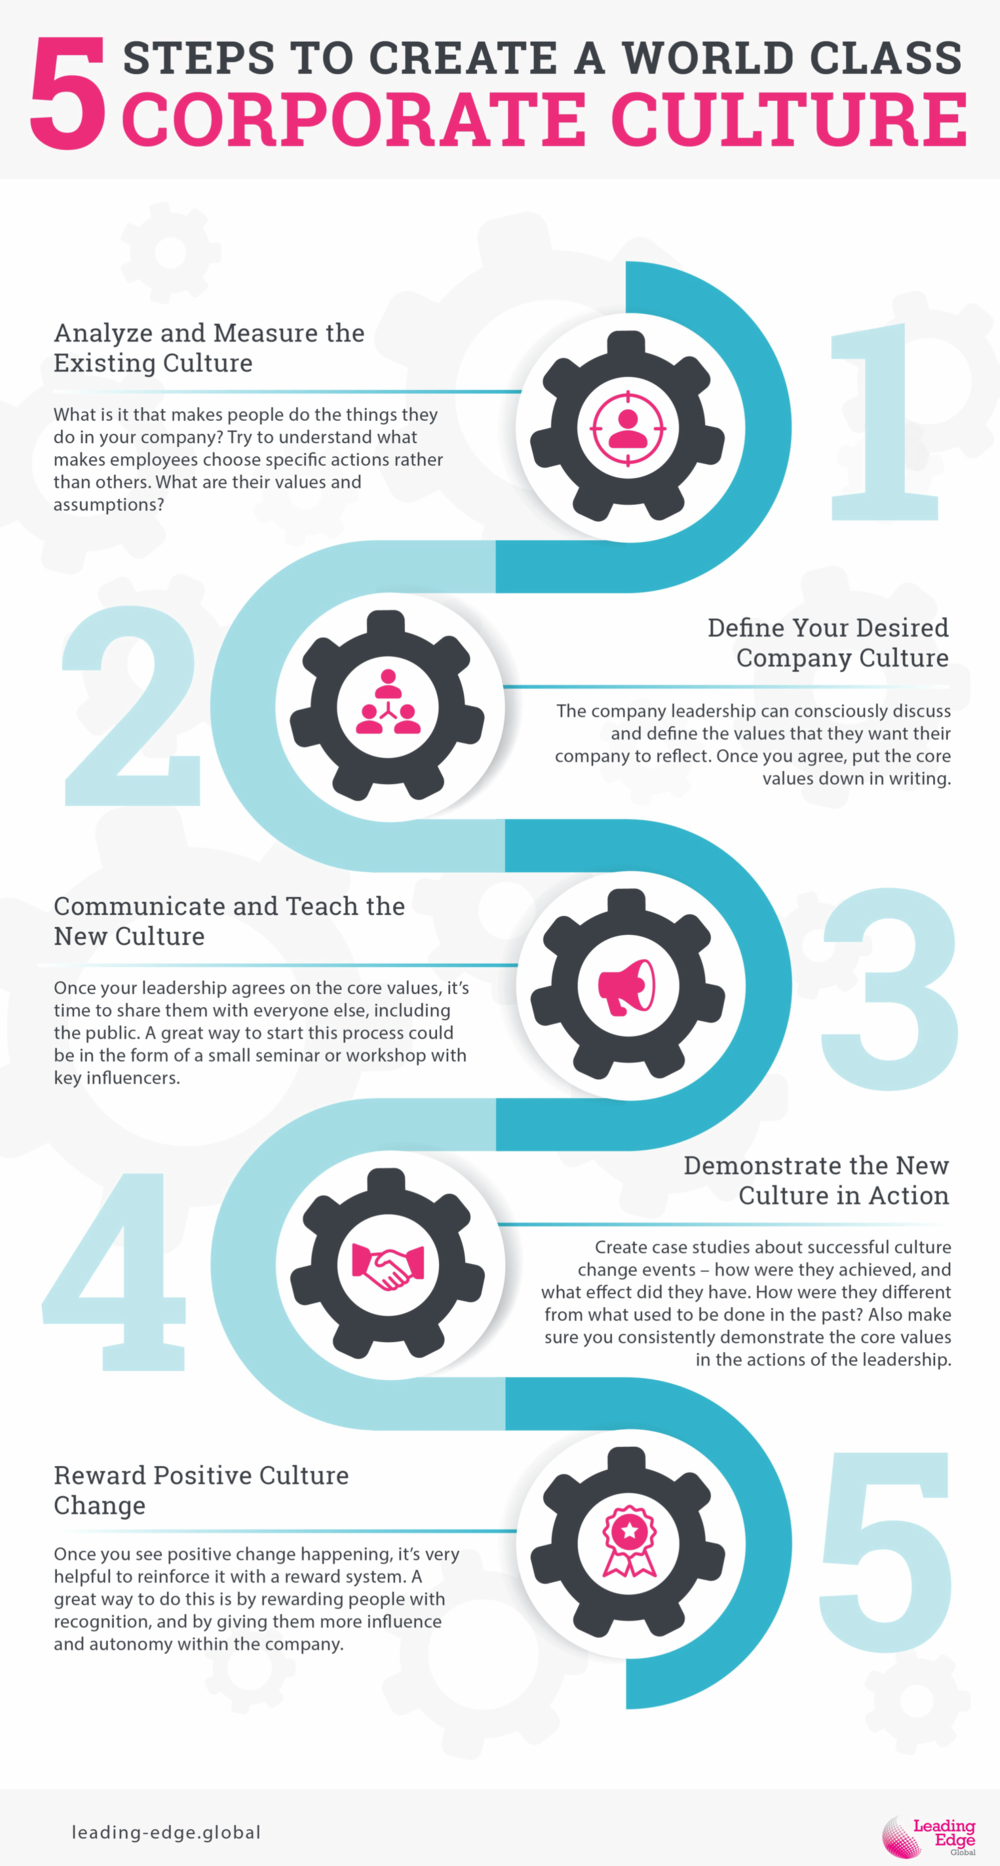 5-steps-corporate-culturev3.png